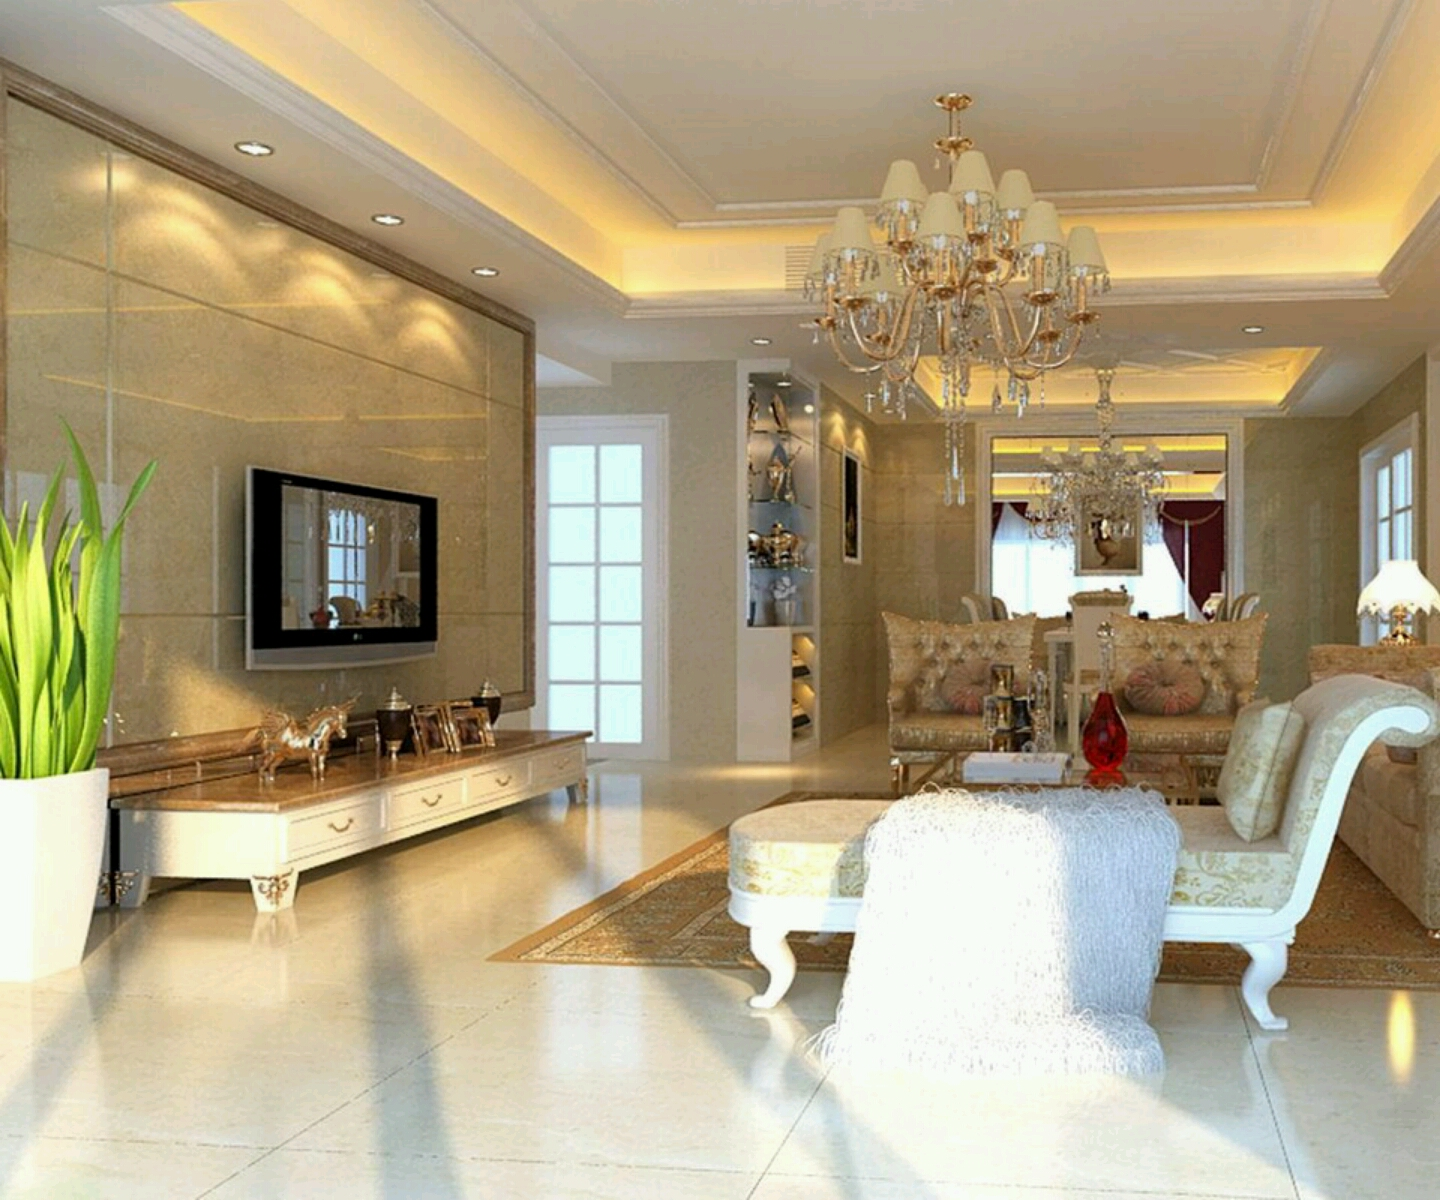 New home designs latest luxury homes interior decoration for Living room interior decor